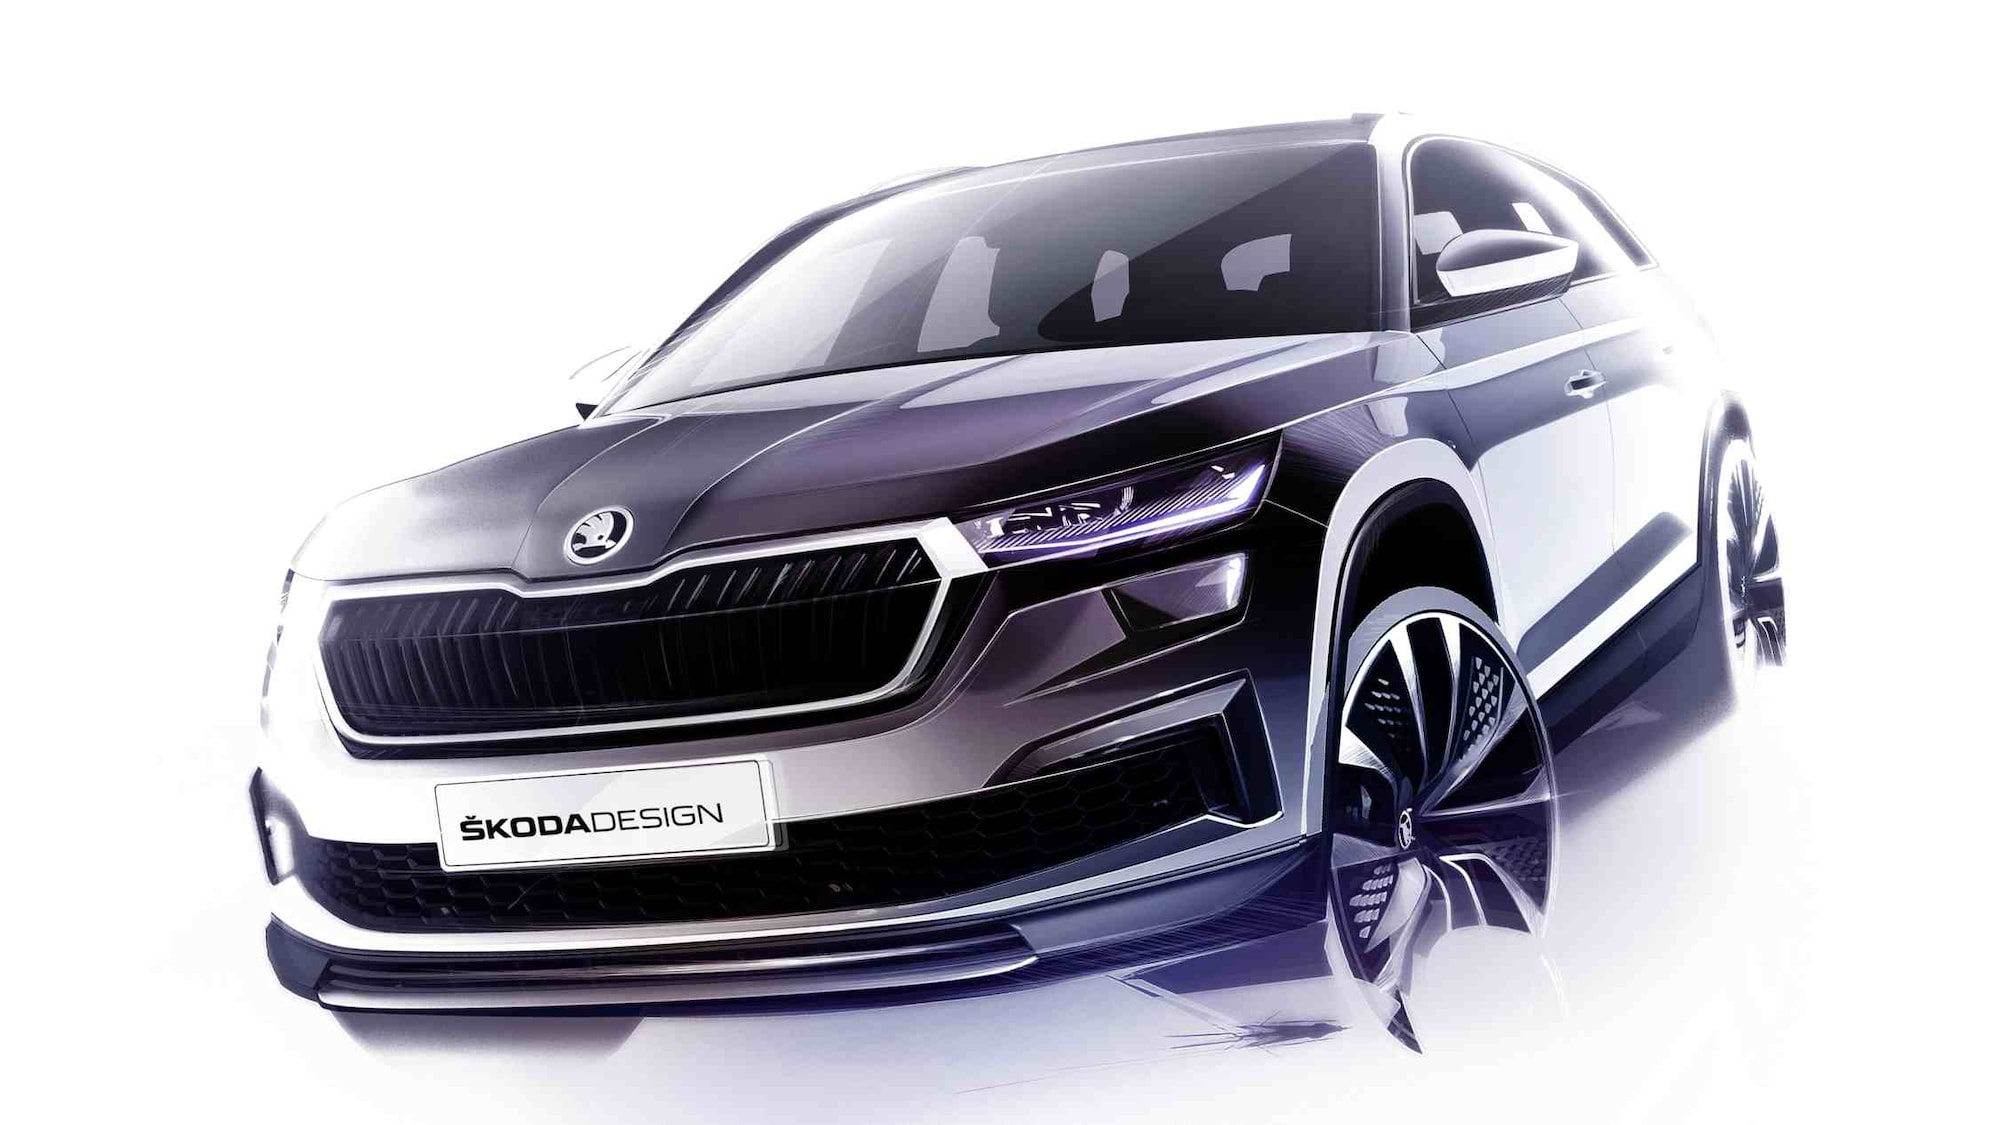 Skoda Kodiaq facelift previewed in design sketches, world premiere slated for 13 April